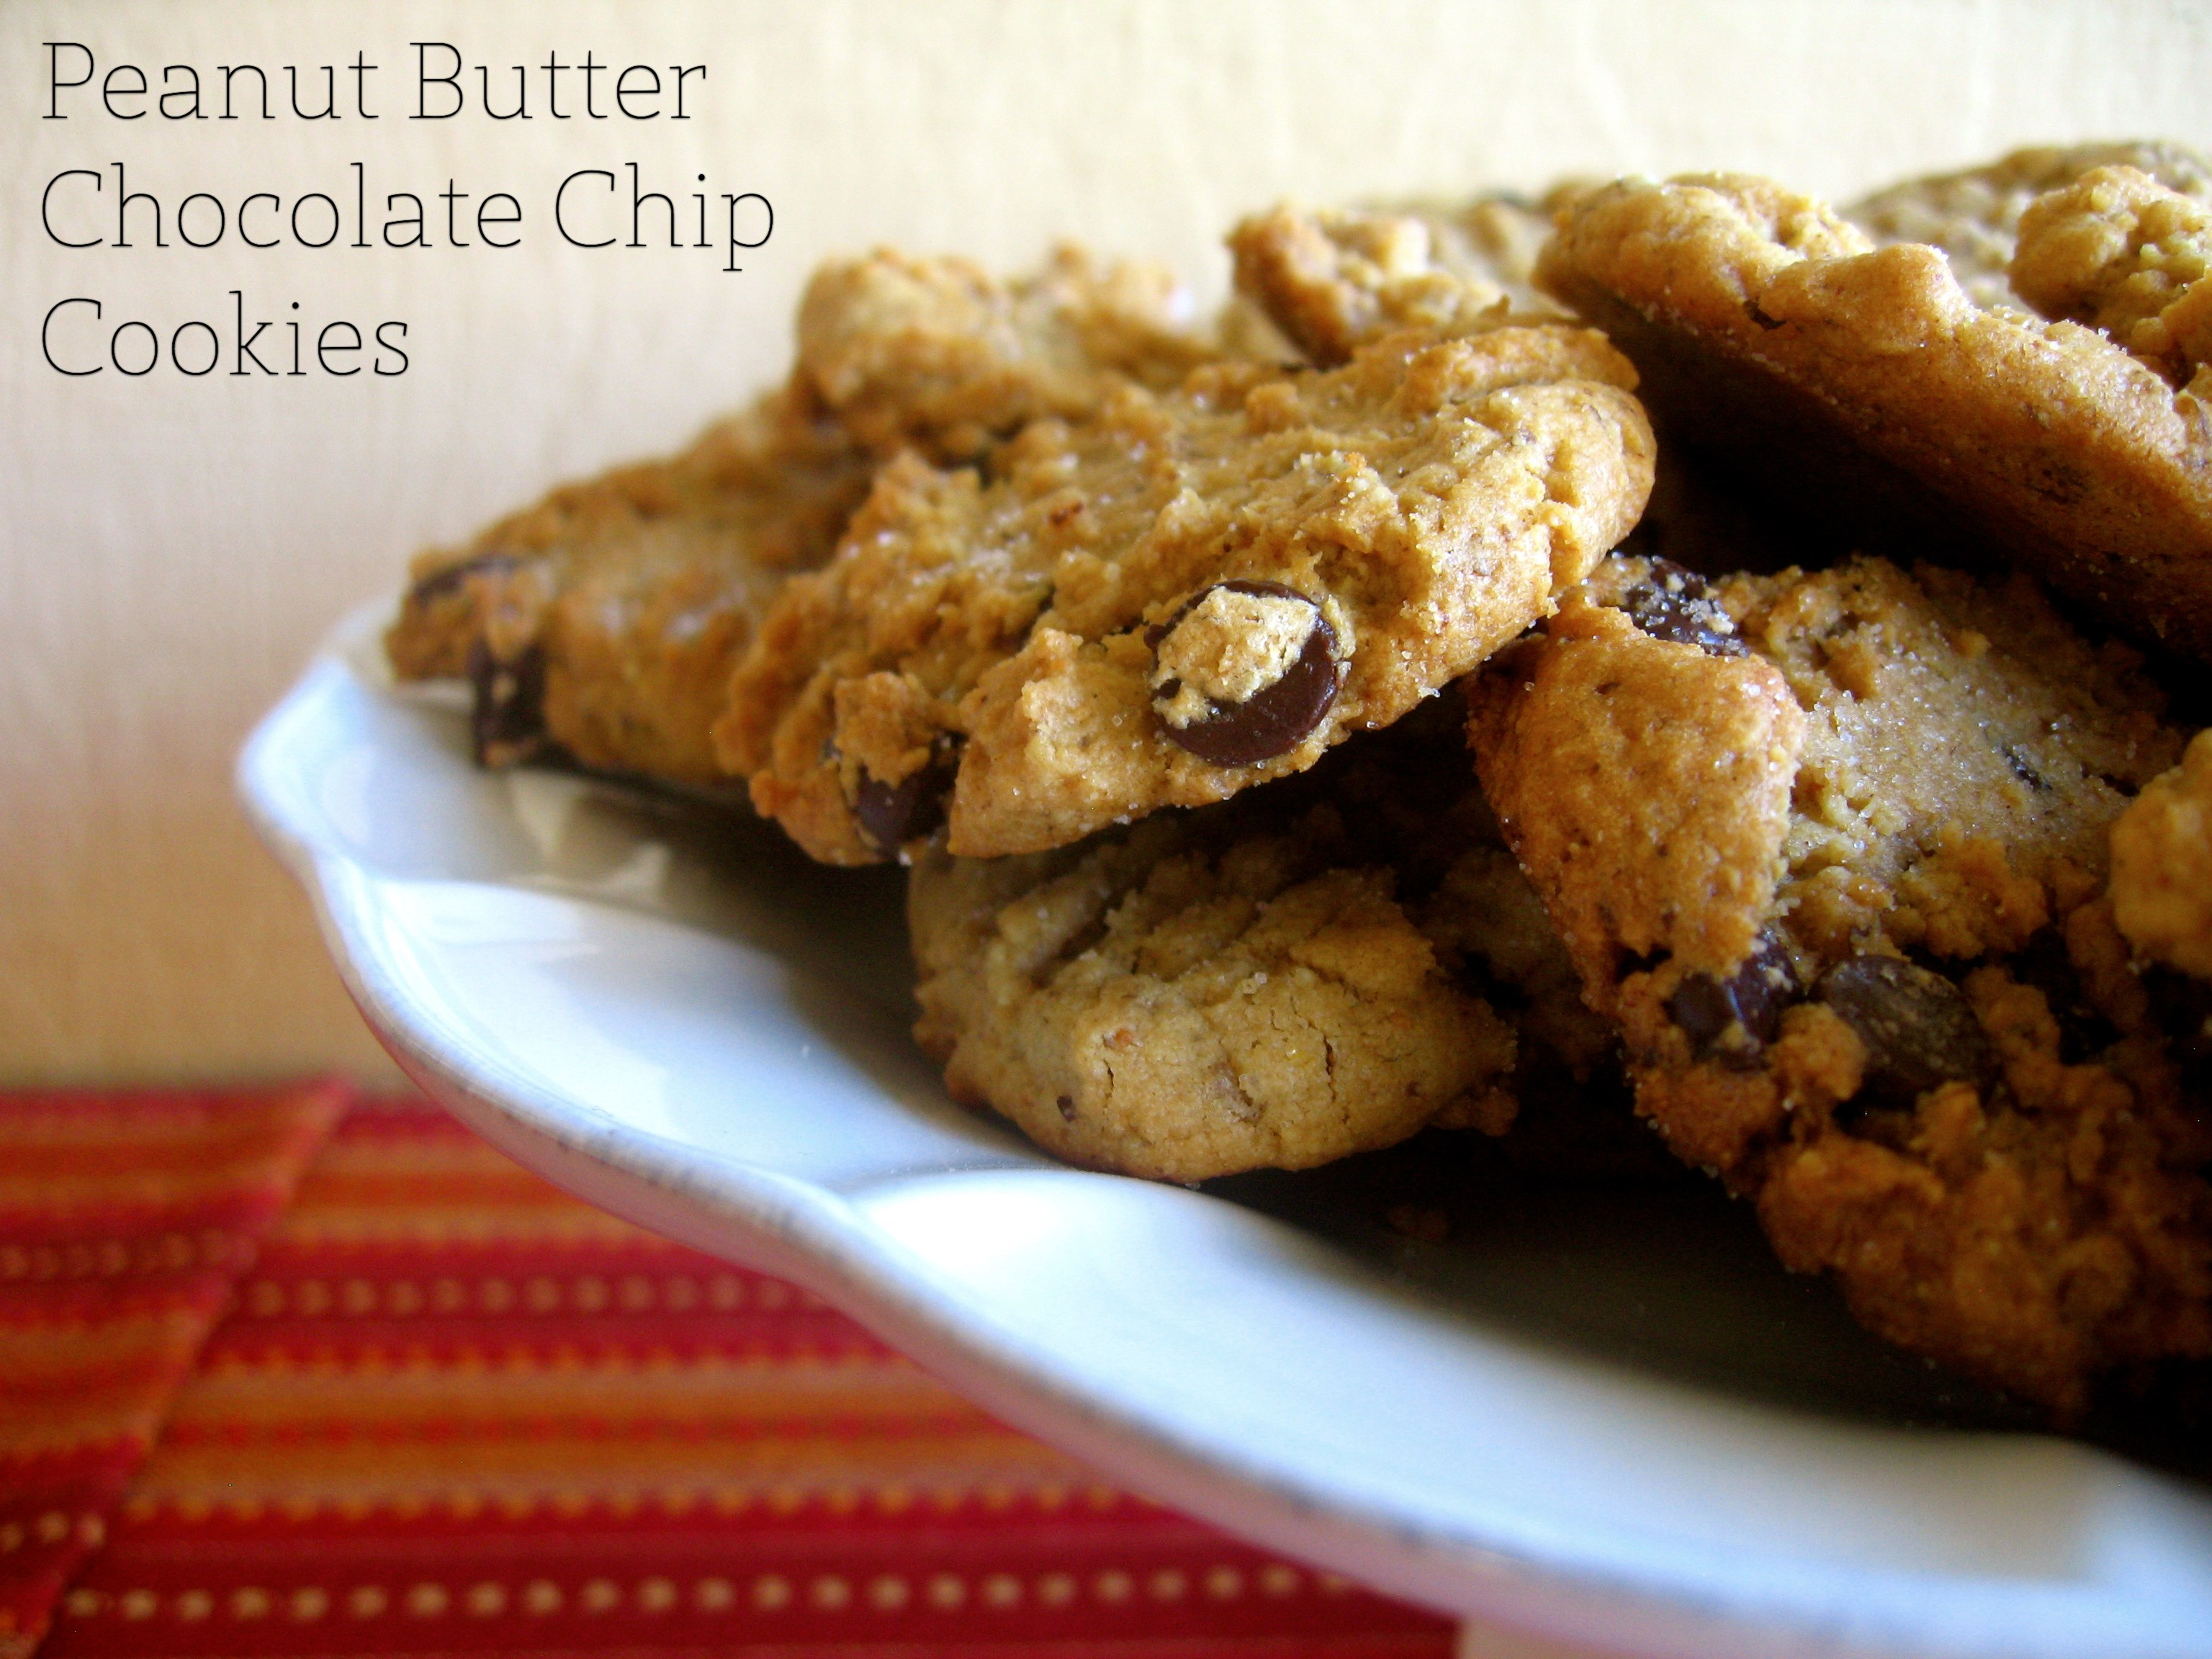 ... Peanut Butter Chocolate Chip Cookies | Nourish, Preserve, and Flourish